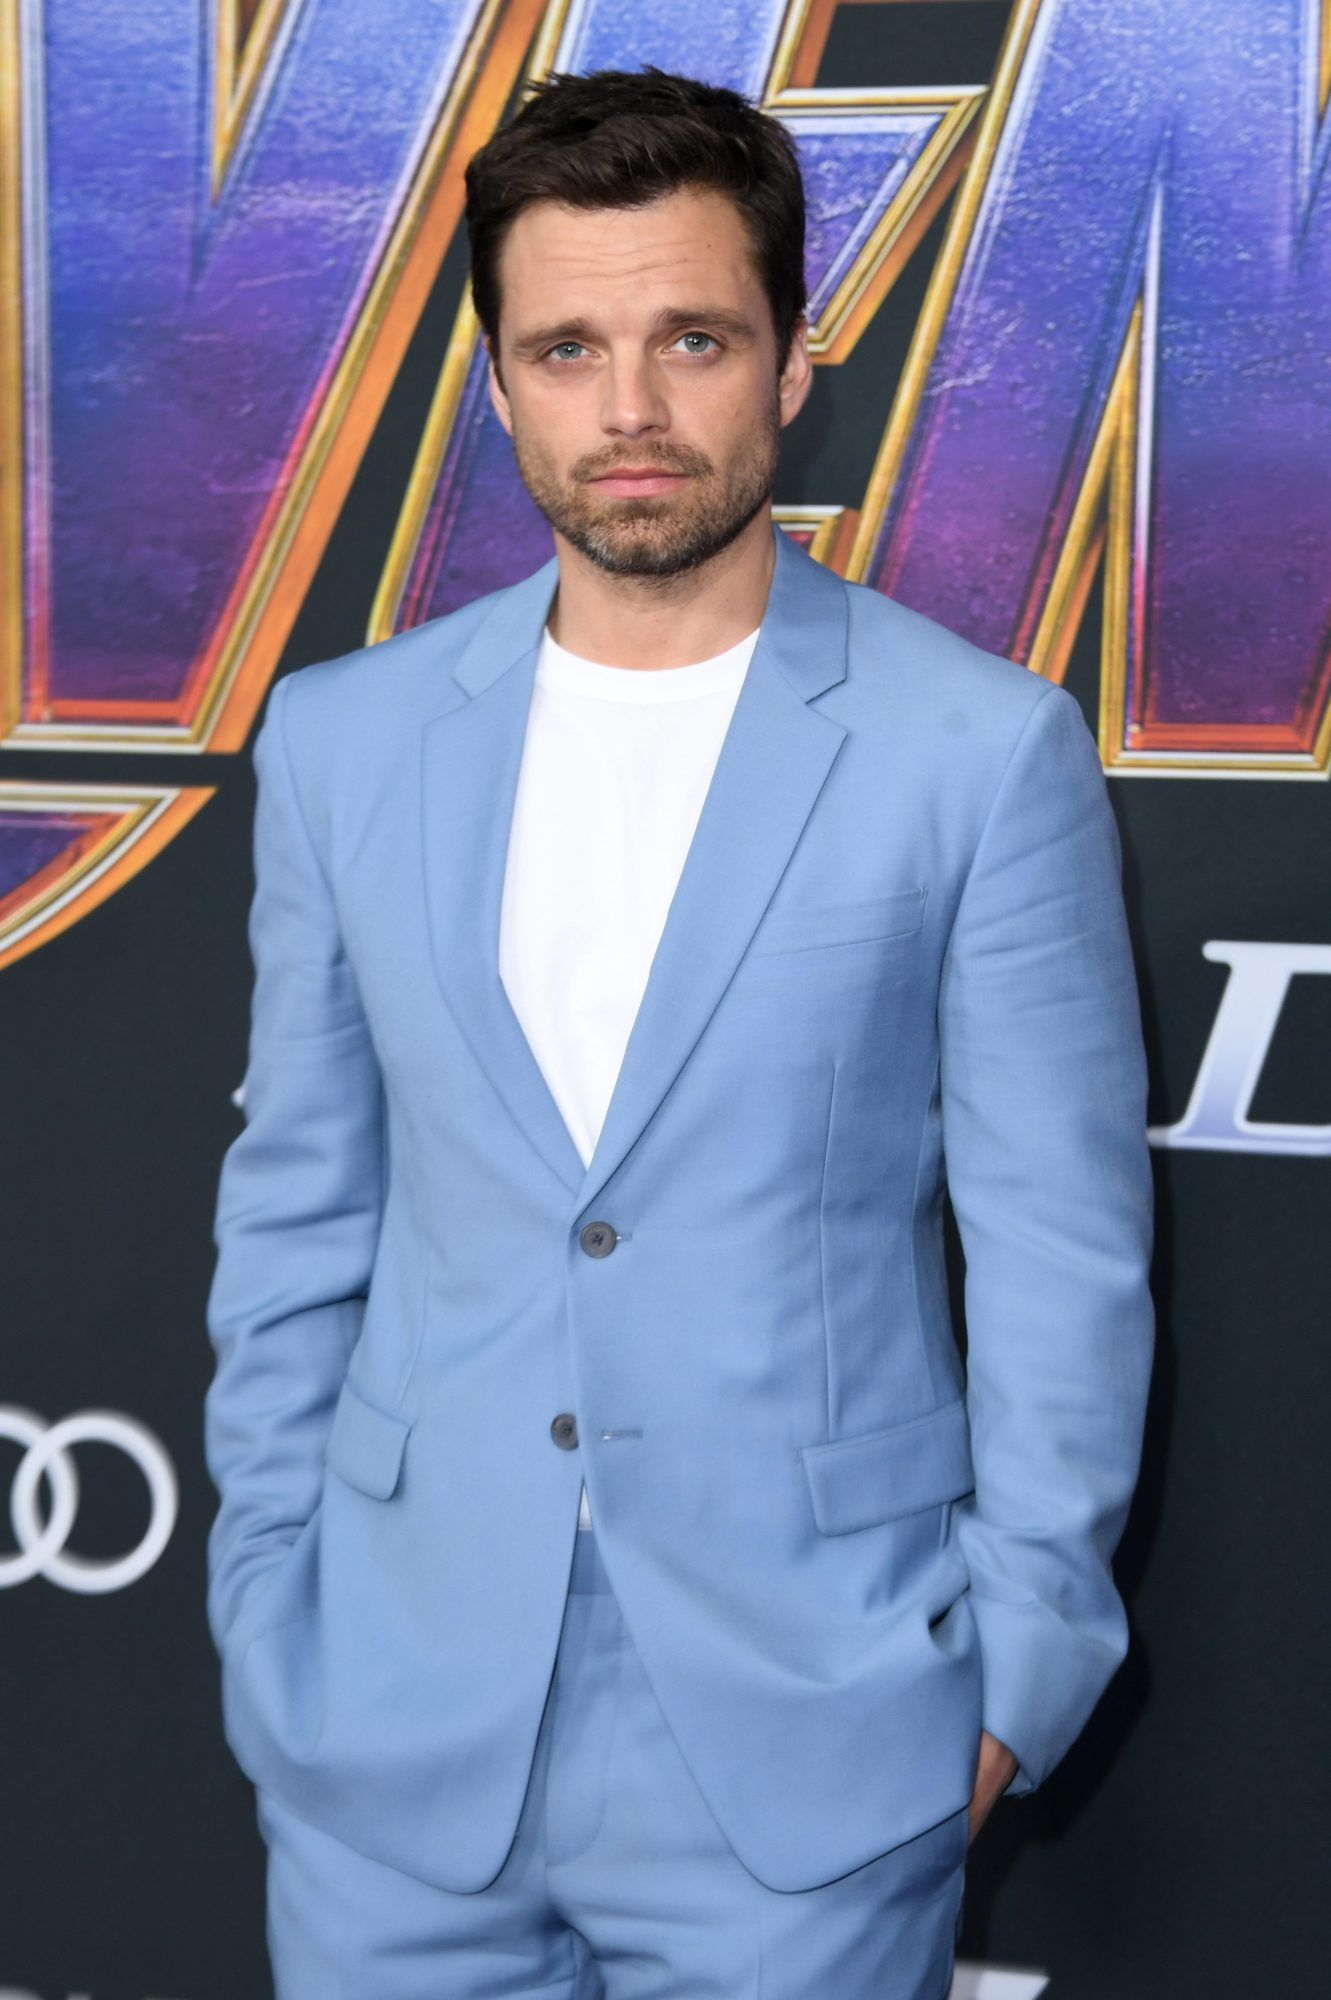 """Romanian/US actor Sebastian Stan arrives for the World premiere of Marvel Studios' """"Avengers: Endgame"""" at the Los Angeles Convention Center on April 22, 2019 in Los Angeles. (Photo by VALERIE MACON/AFP/Getty Images)"""